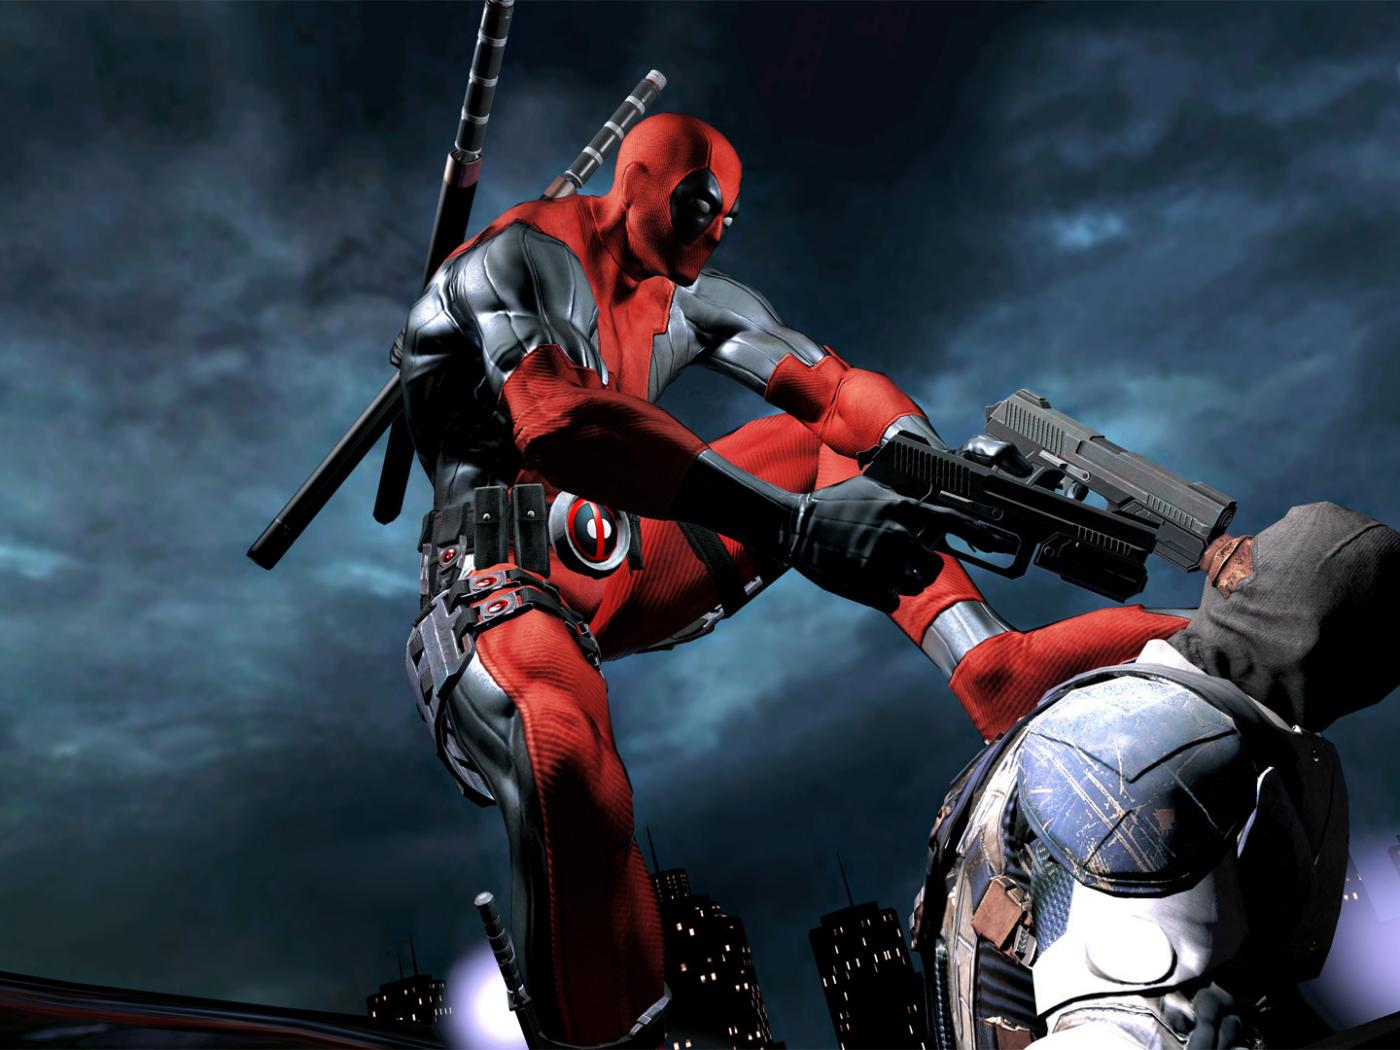 deadpool character background free download hd